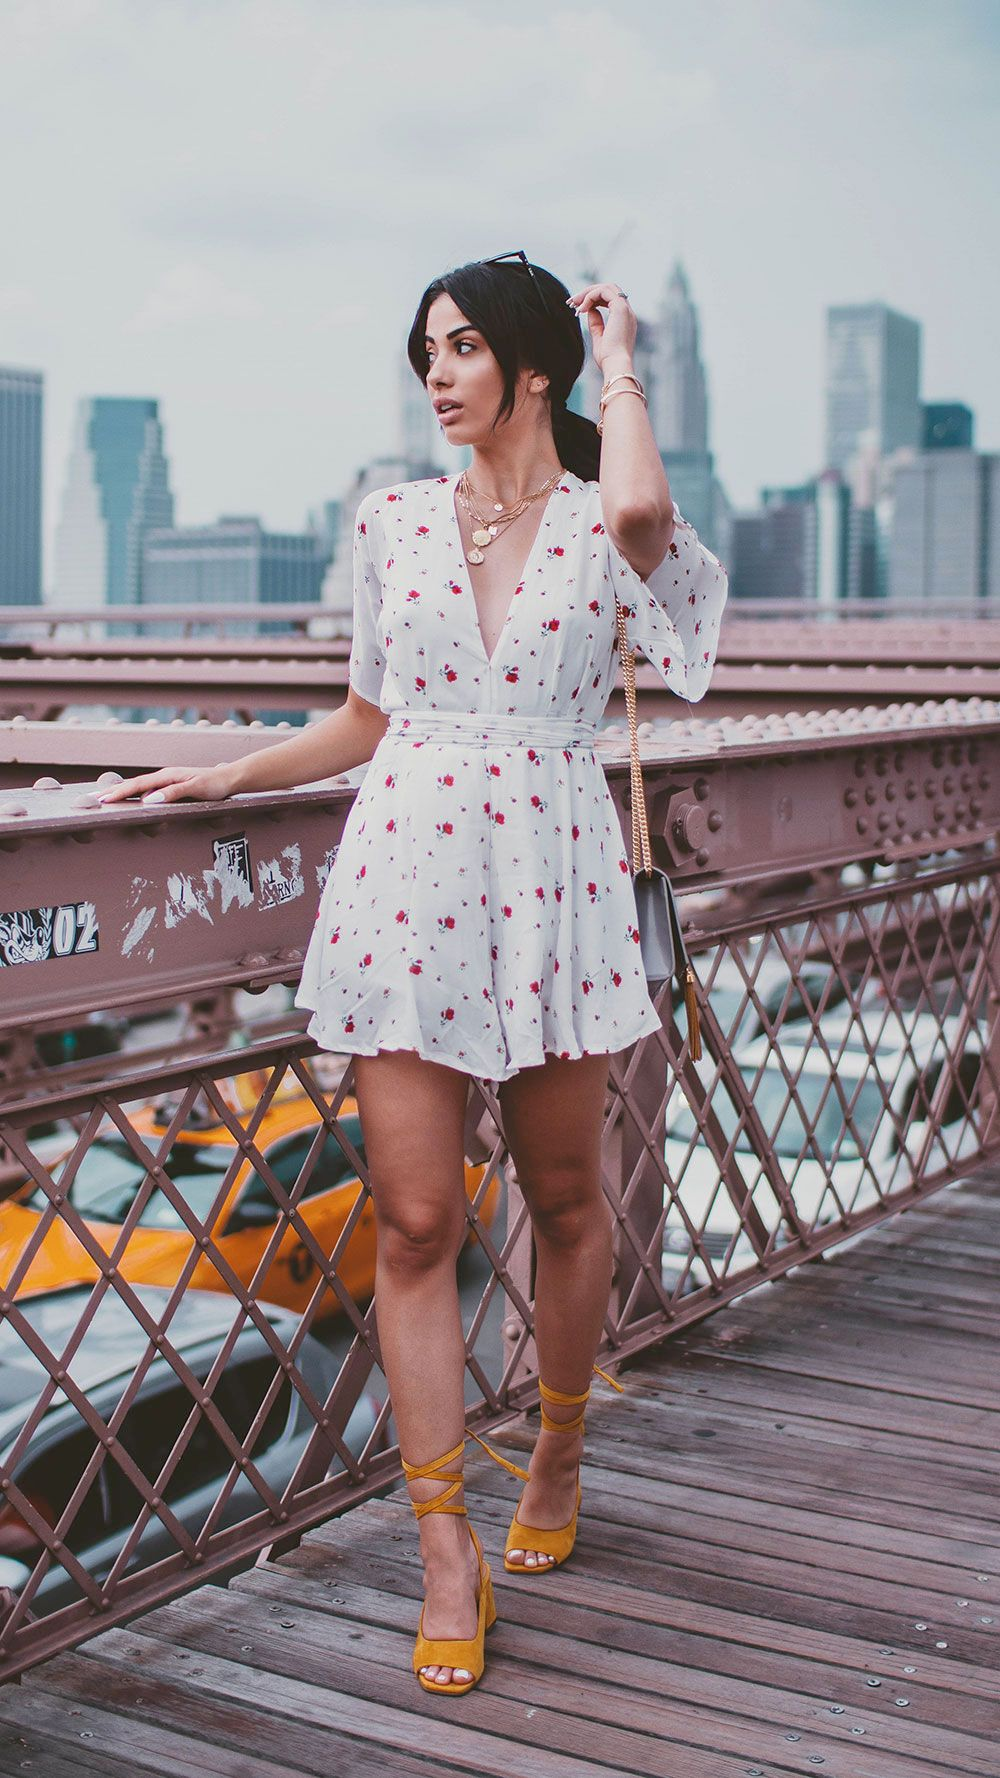 White Flower Romper With Yellow Sandals Summer Summerstyle Summerdress Summeroutfits Outfit Romper Yellow Sandals Lovely Clothes Sandals Outfit Casual [ 1778 x 1000 Pixel ]